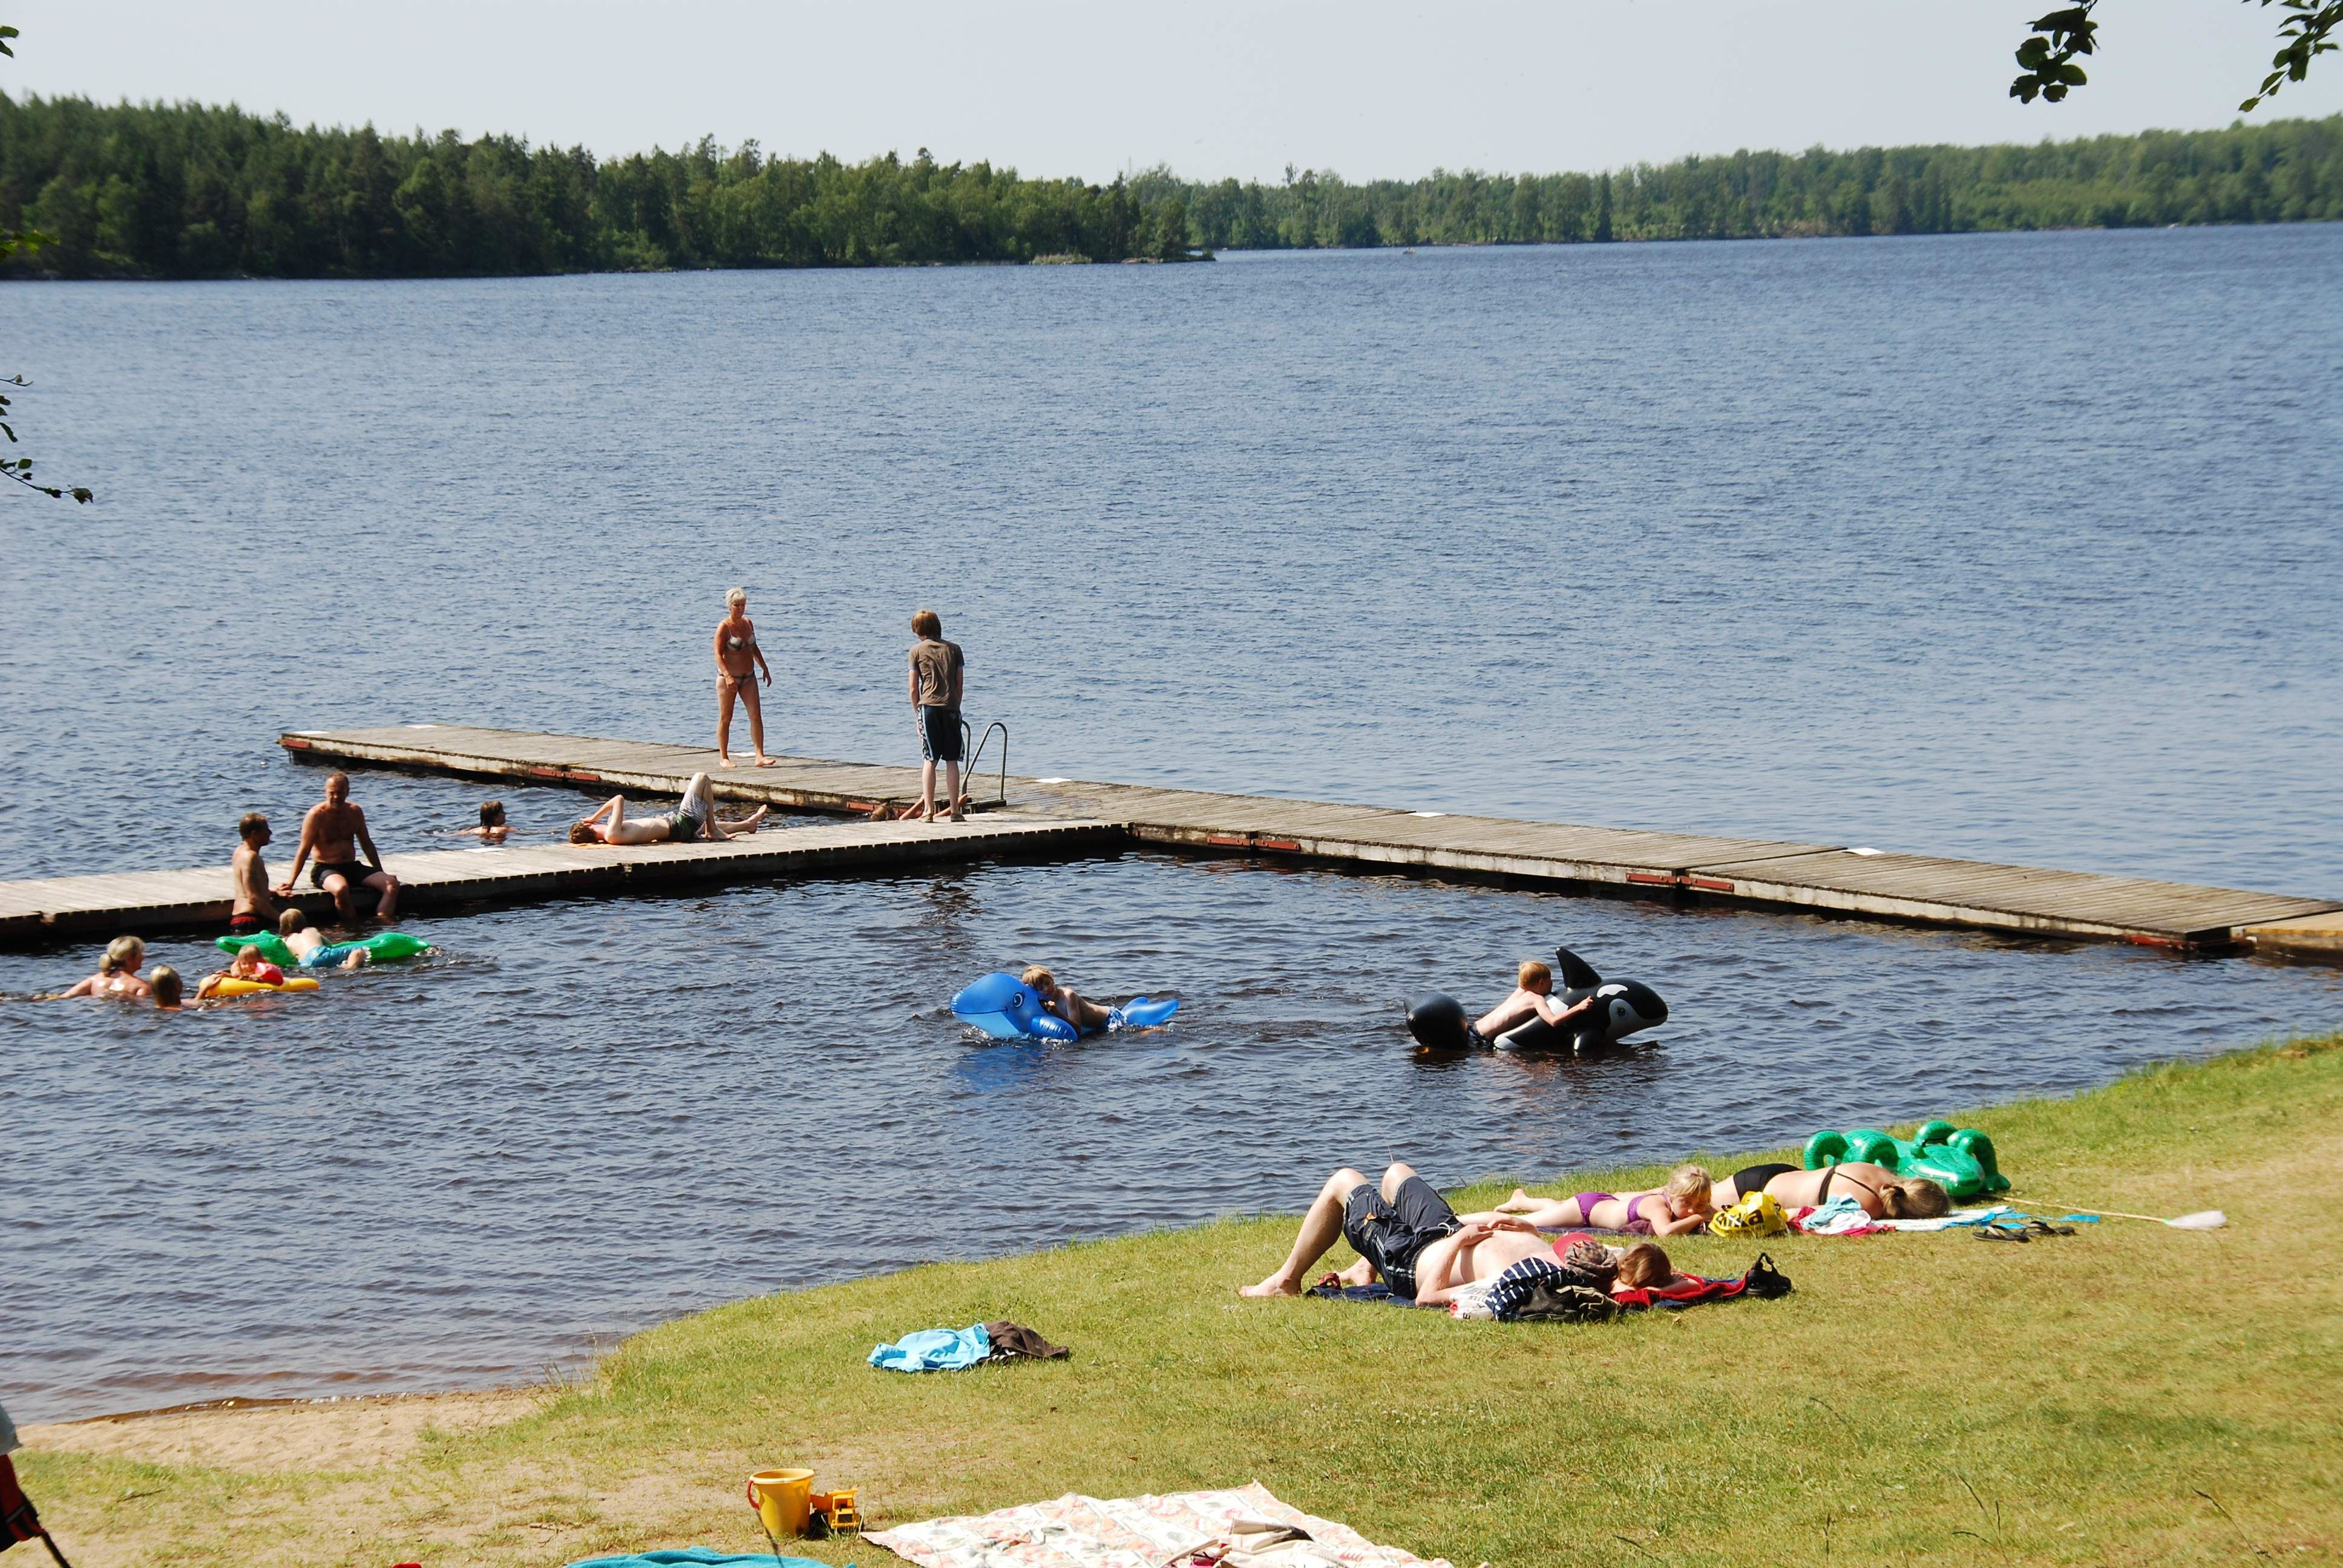 © Urshults Camping, Swimming area Rävabacken - Åsnen/Urshult